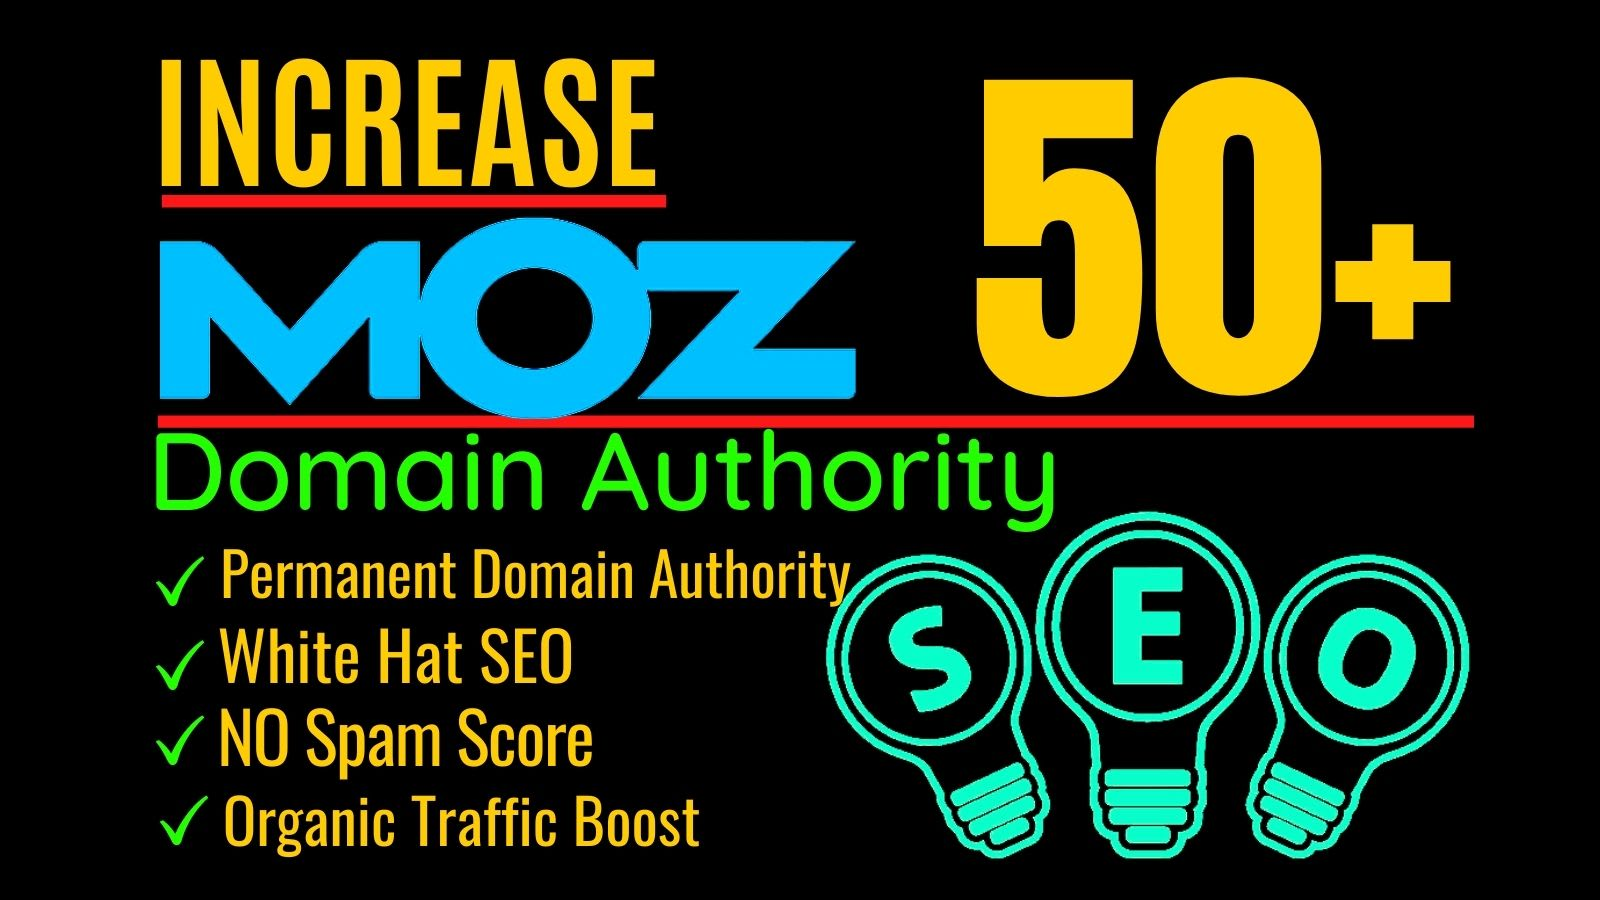 Guaranteed- Increase your MOZ DA 50+ and PA 30+ with White Hat SEO in 10 Days- Moneyback Guaranteed